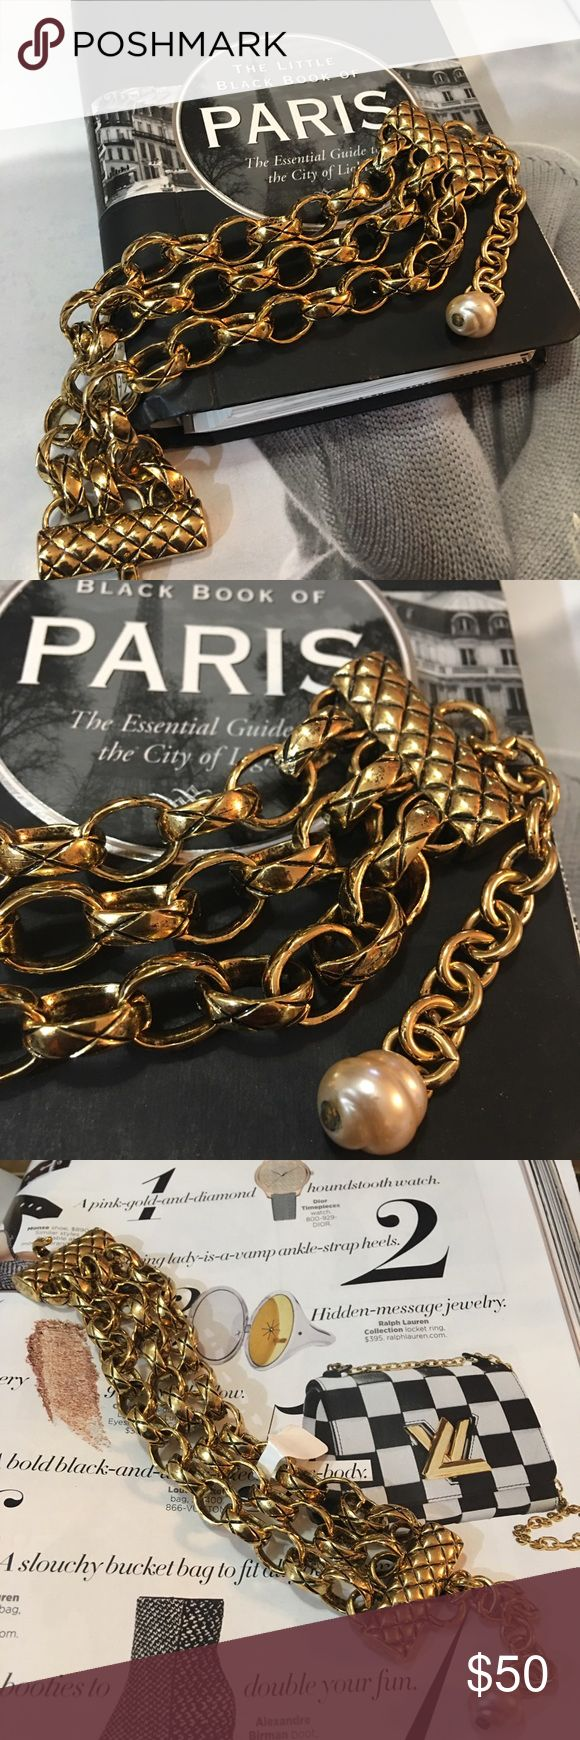 "JOAN RIVERS Gold Triple Strand Bracelet Excellent condition  Triple strand gold bracelet with pearl detail  Hook and eye closure  10.5"" long Joan Rivers Jewelry Bracelets"